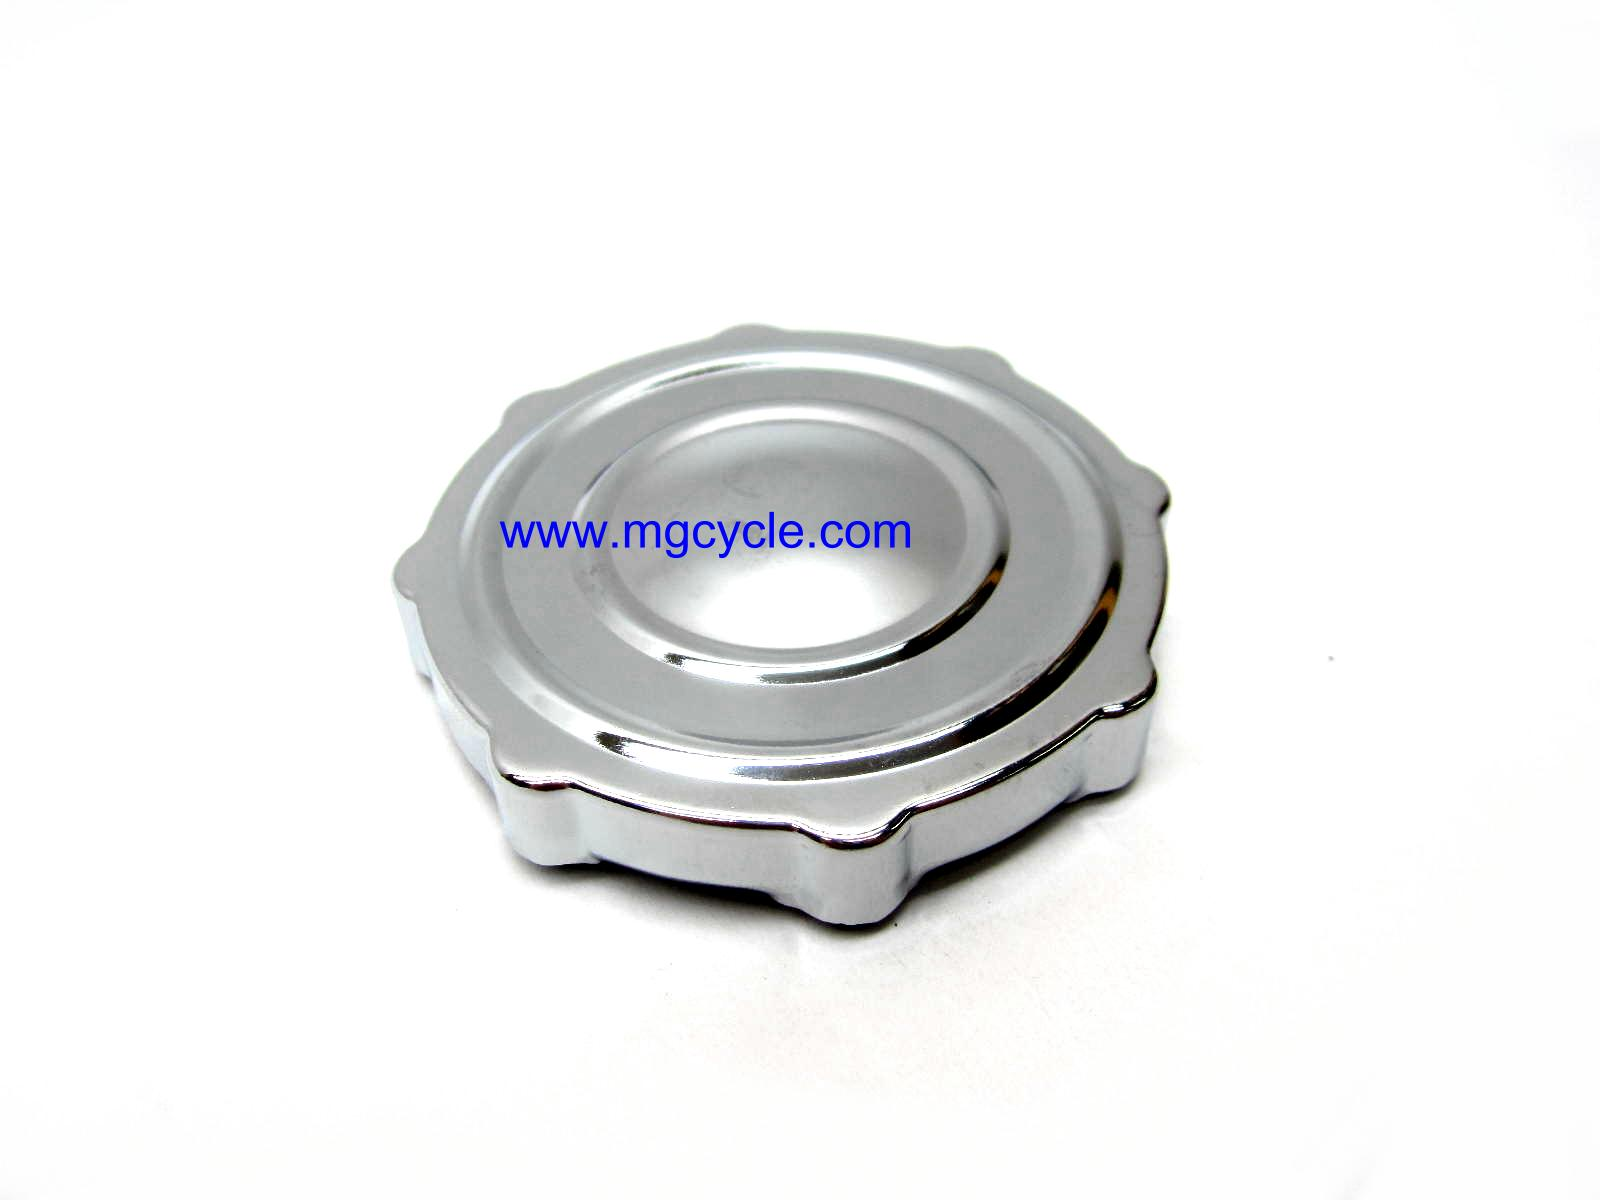 Fuel tank cap low profile under trap door, vented, many models